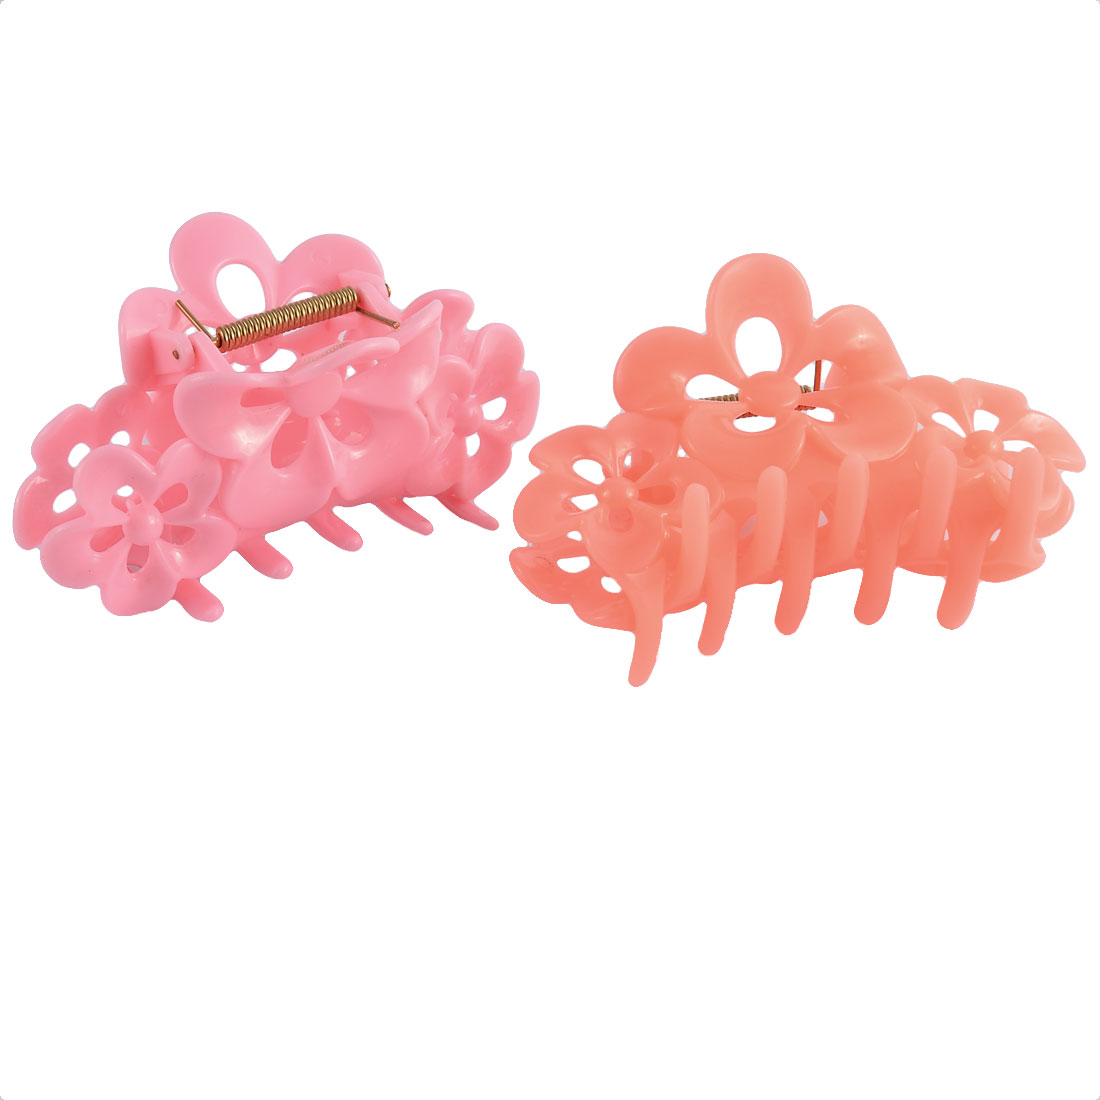 Home Woman Lady Plastic Flower Shaped Stylish Spring Loaded Hairclip Clamp Claw 2 Pcs